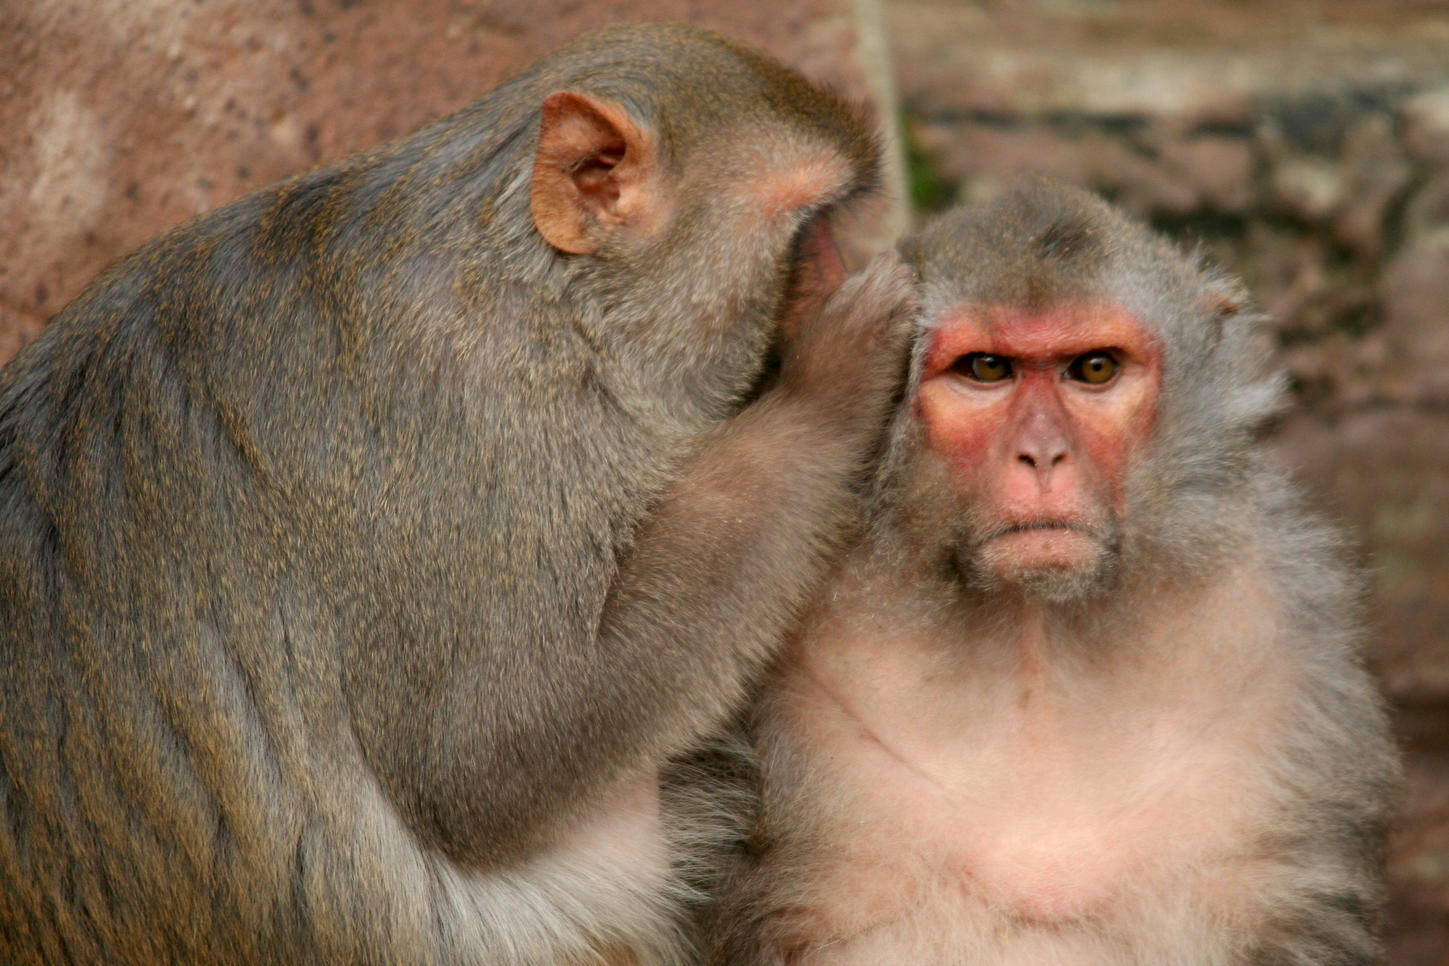 Human stem cells are returned to the monkeys the ability to grab objects